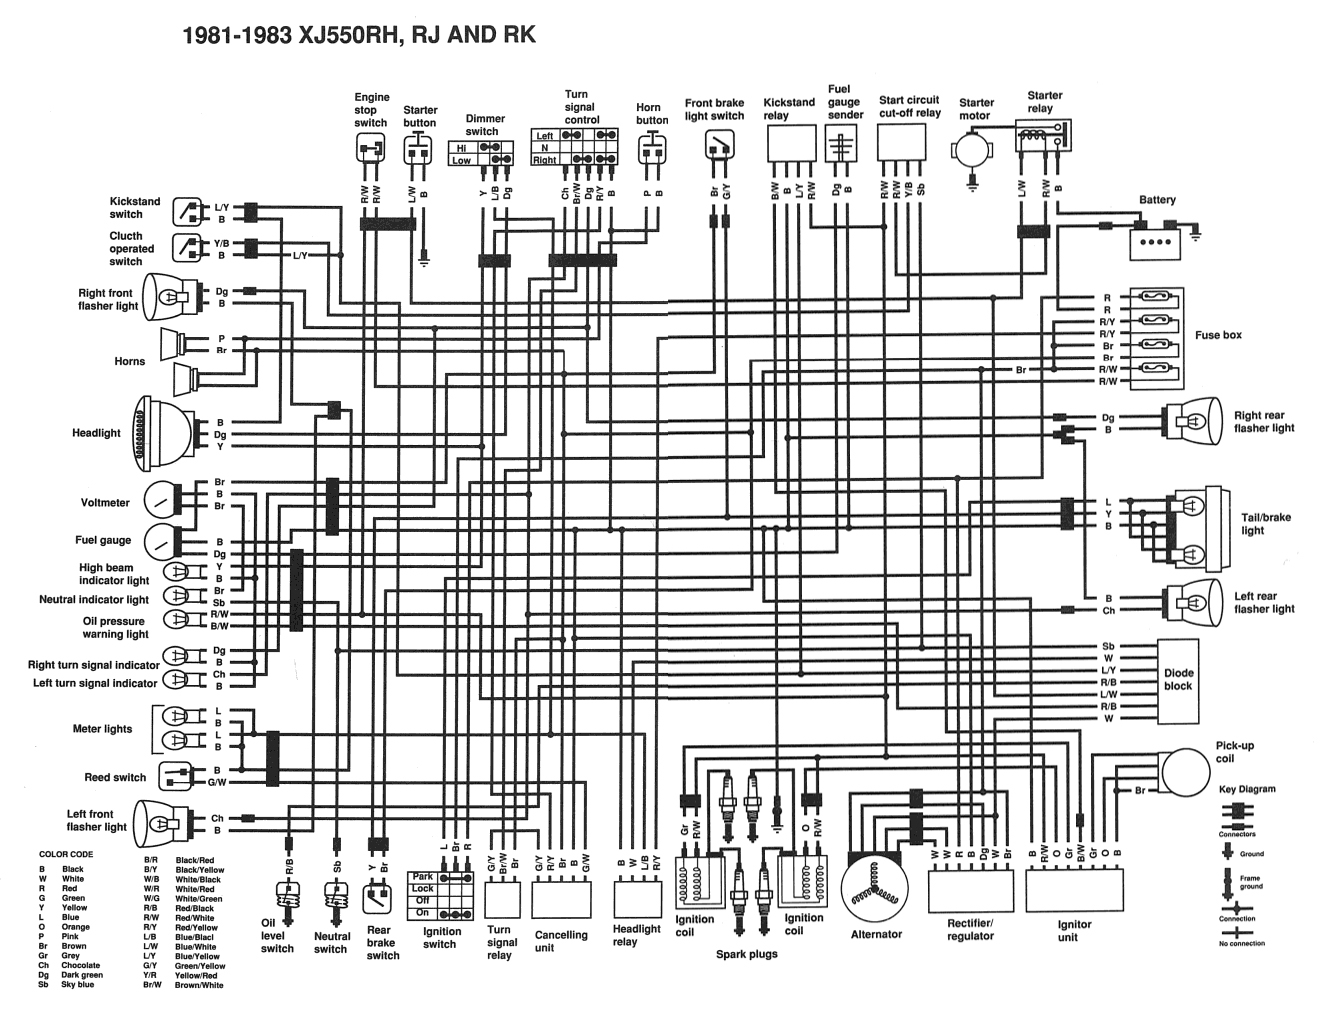 saab wiring diagram big yamaha xj750 engine diagram yamaha wiring diagrams